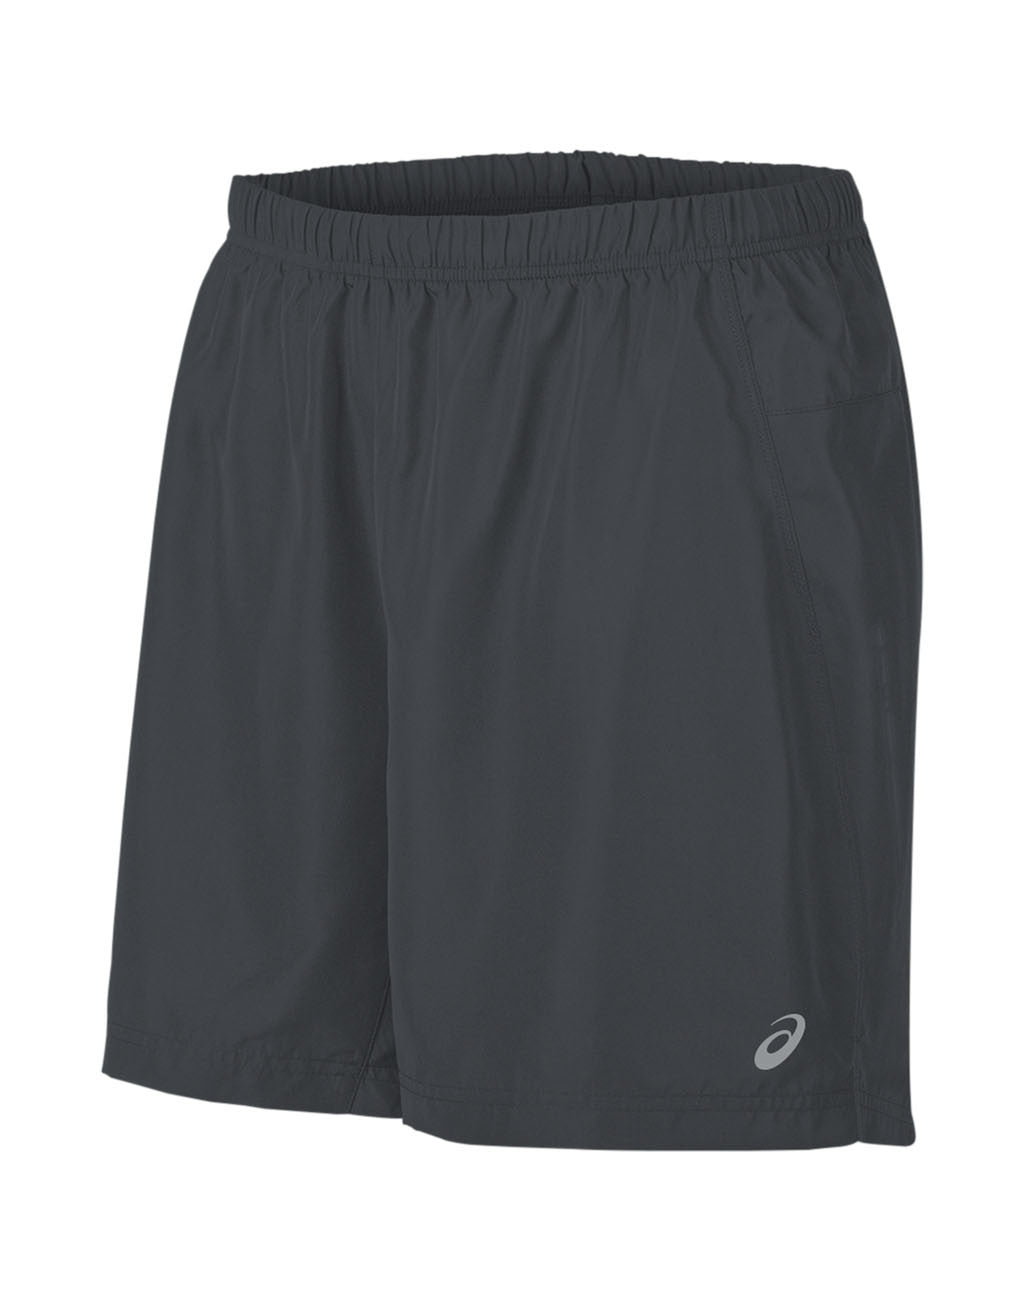 ASICS Woven Short, 7in (Men's)2XL_master_image